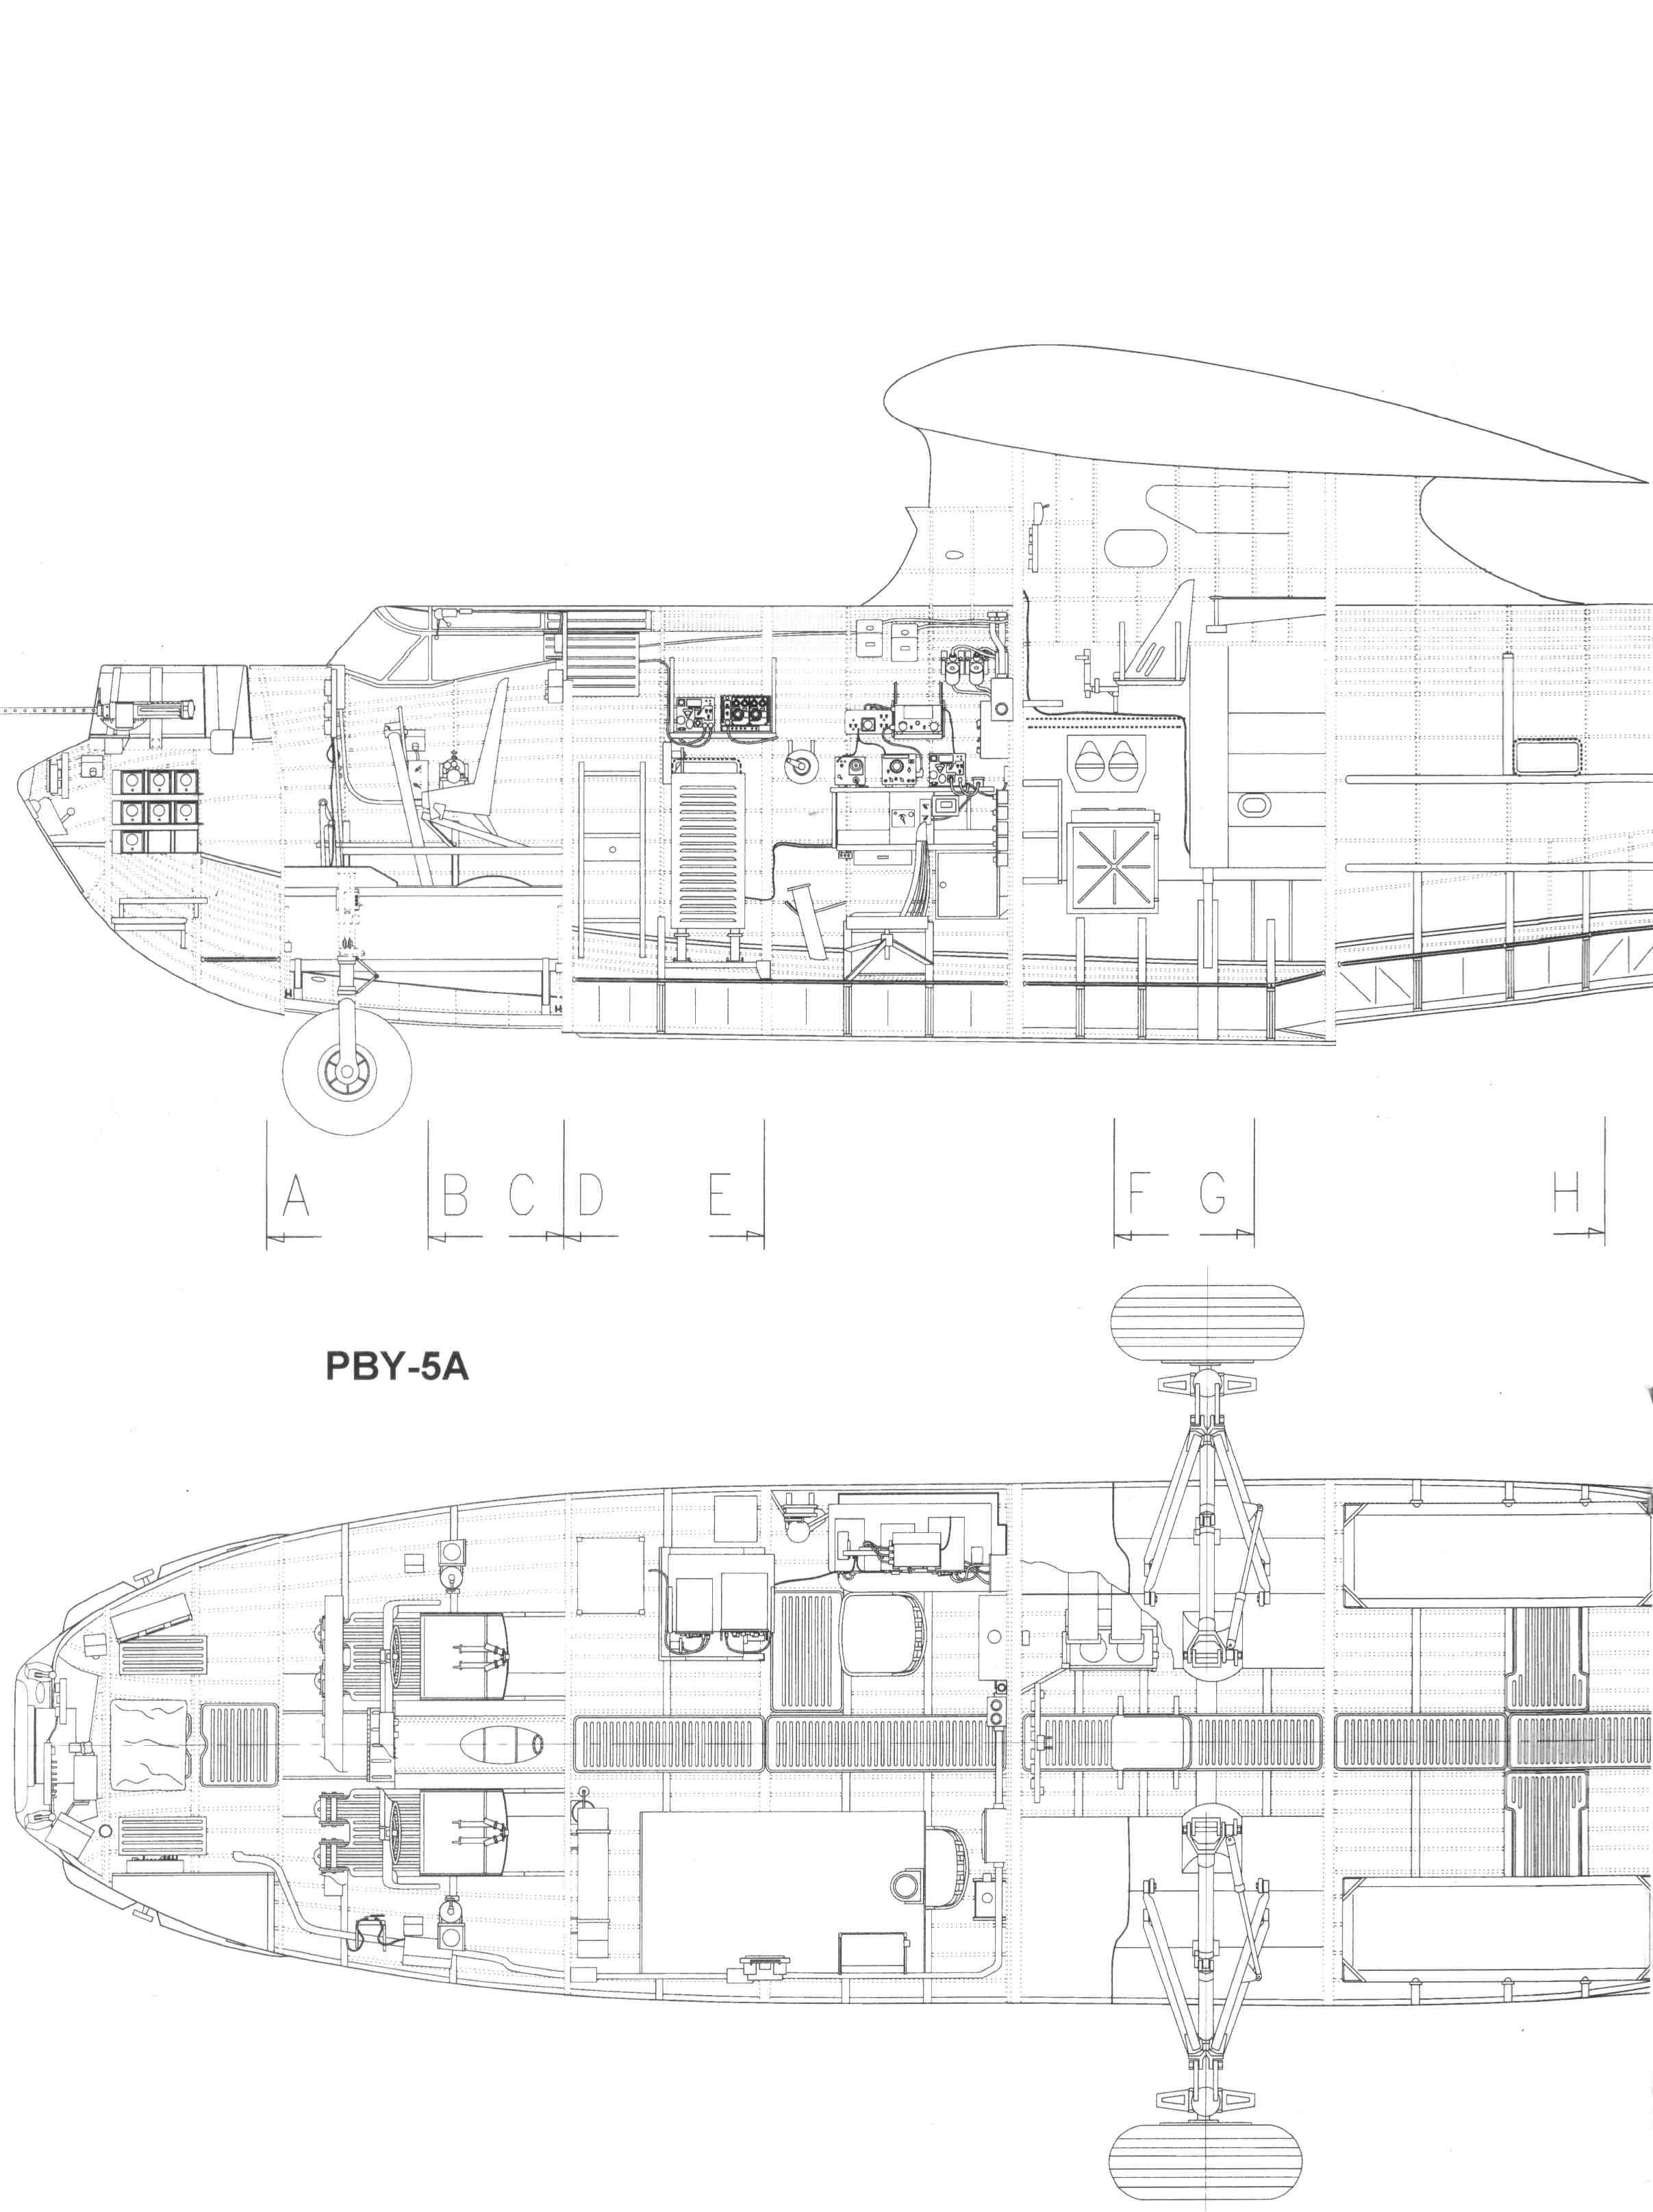 Consolidated pby catalina blueprint pbys pinterest aircraft consolidated pby catalina blueprint malvernweather Choice Image